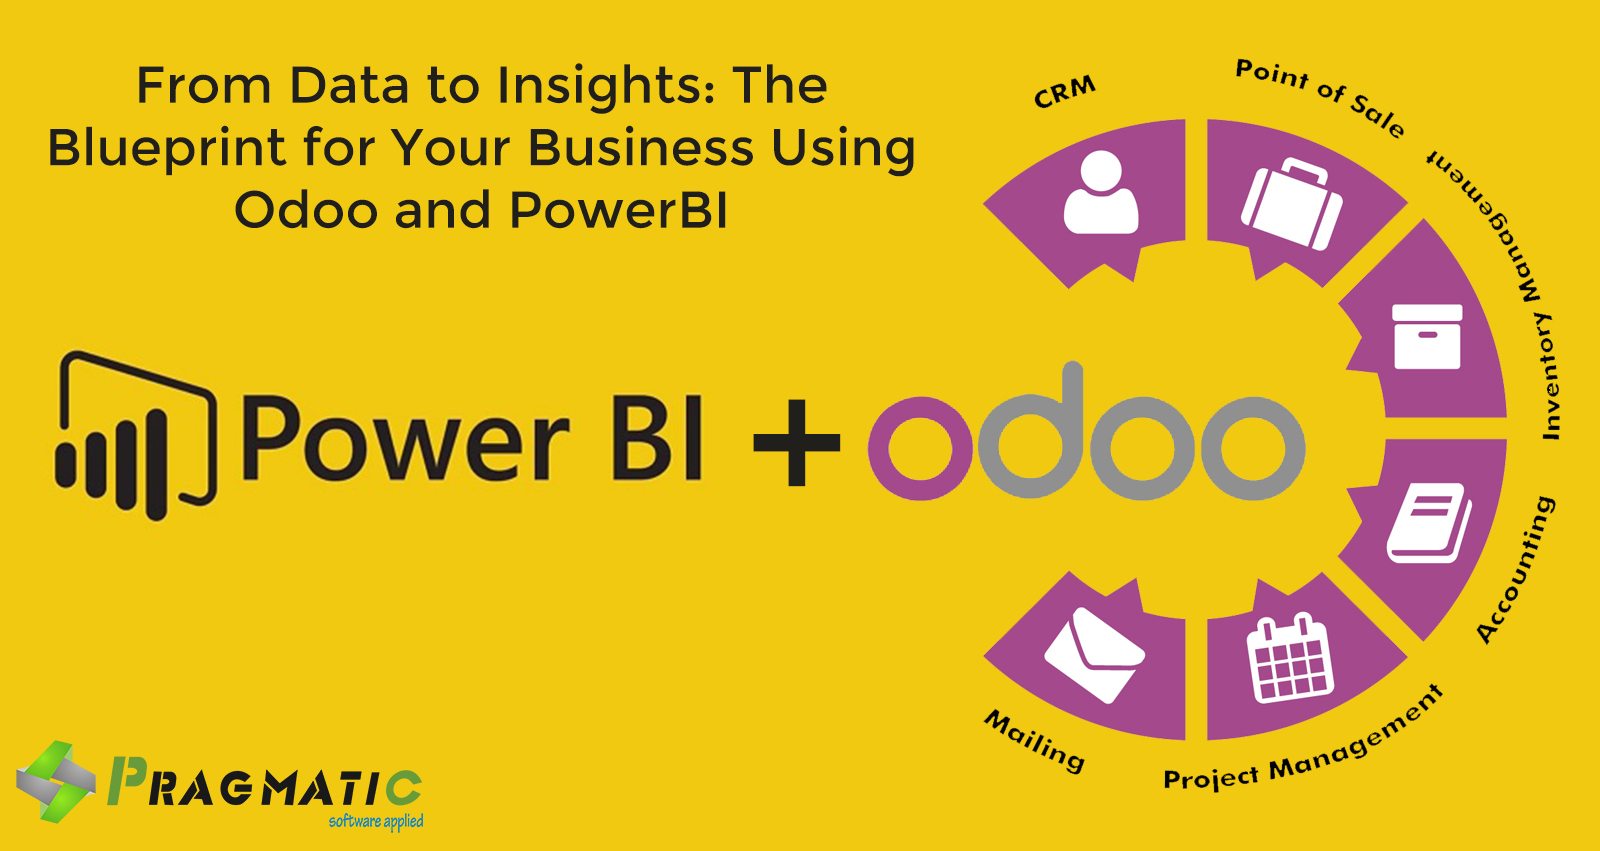 From data to insights the blueprint for your business using odoo from data to insights the blueprint for your business using odoo and powerbi malvernweather